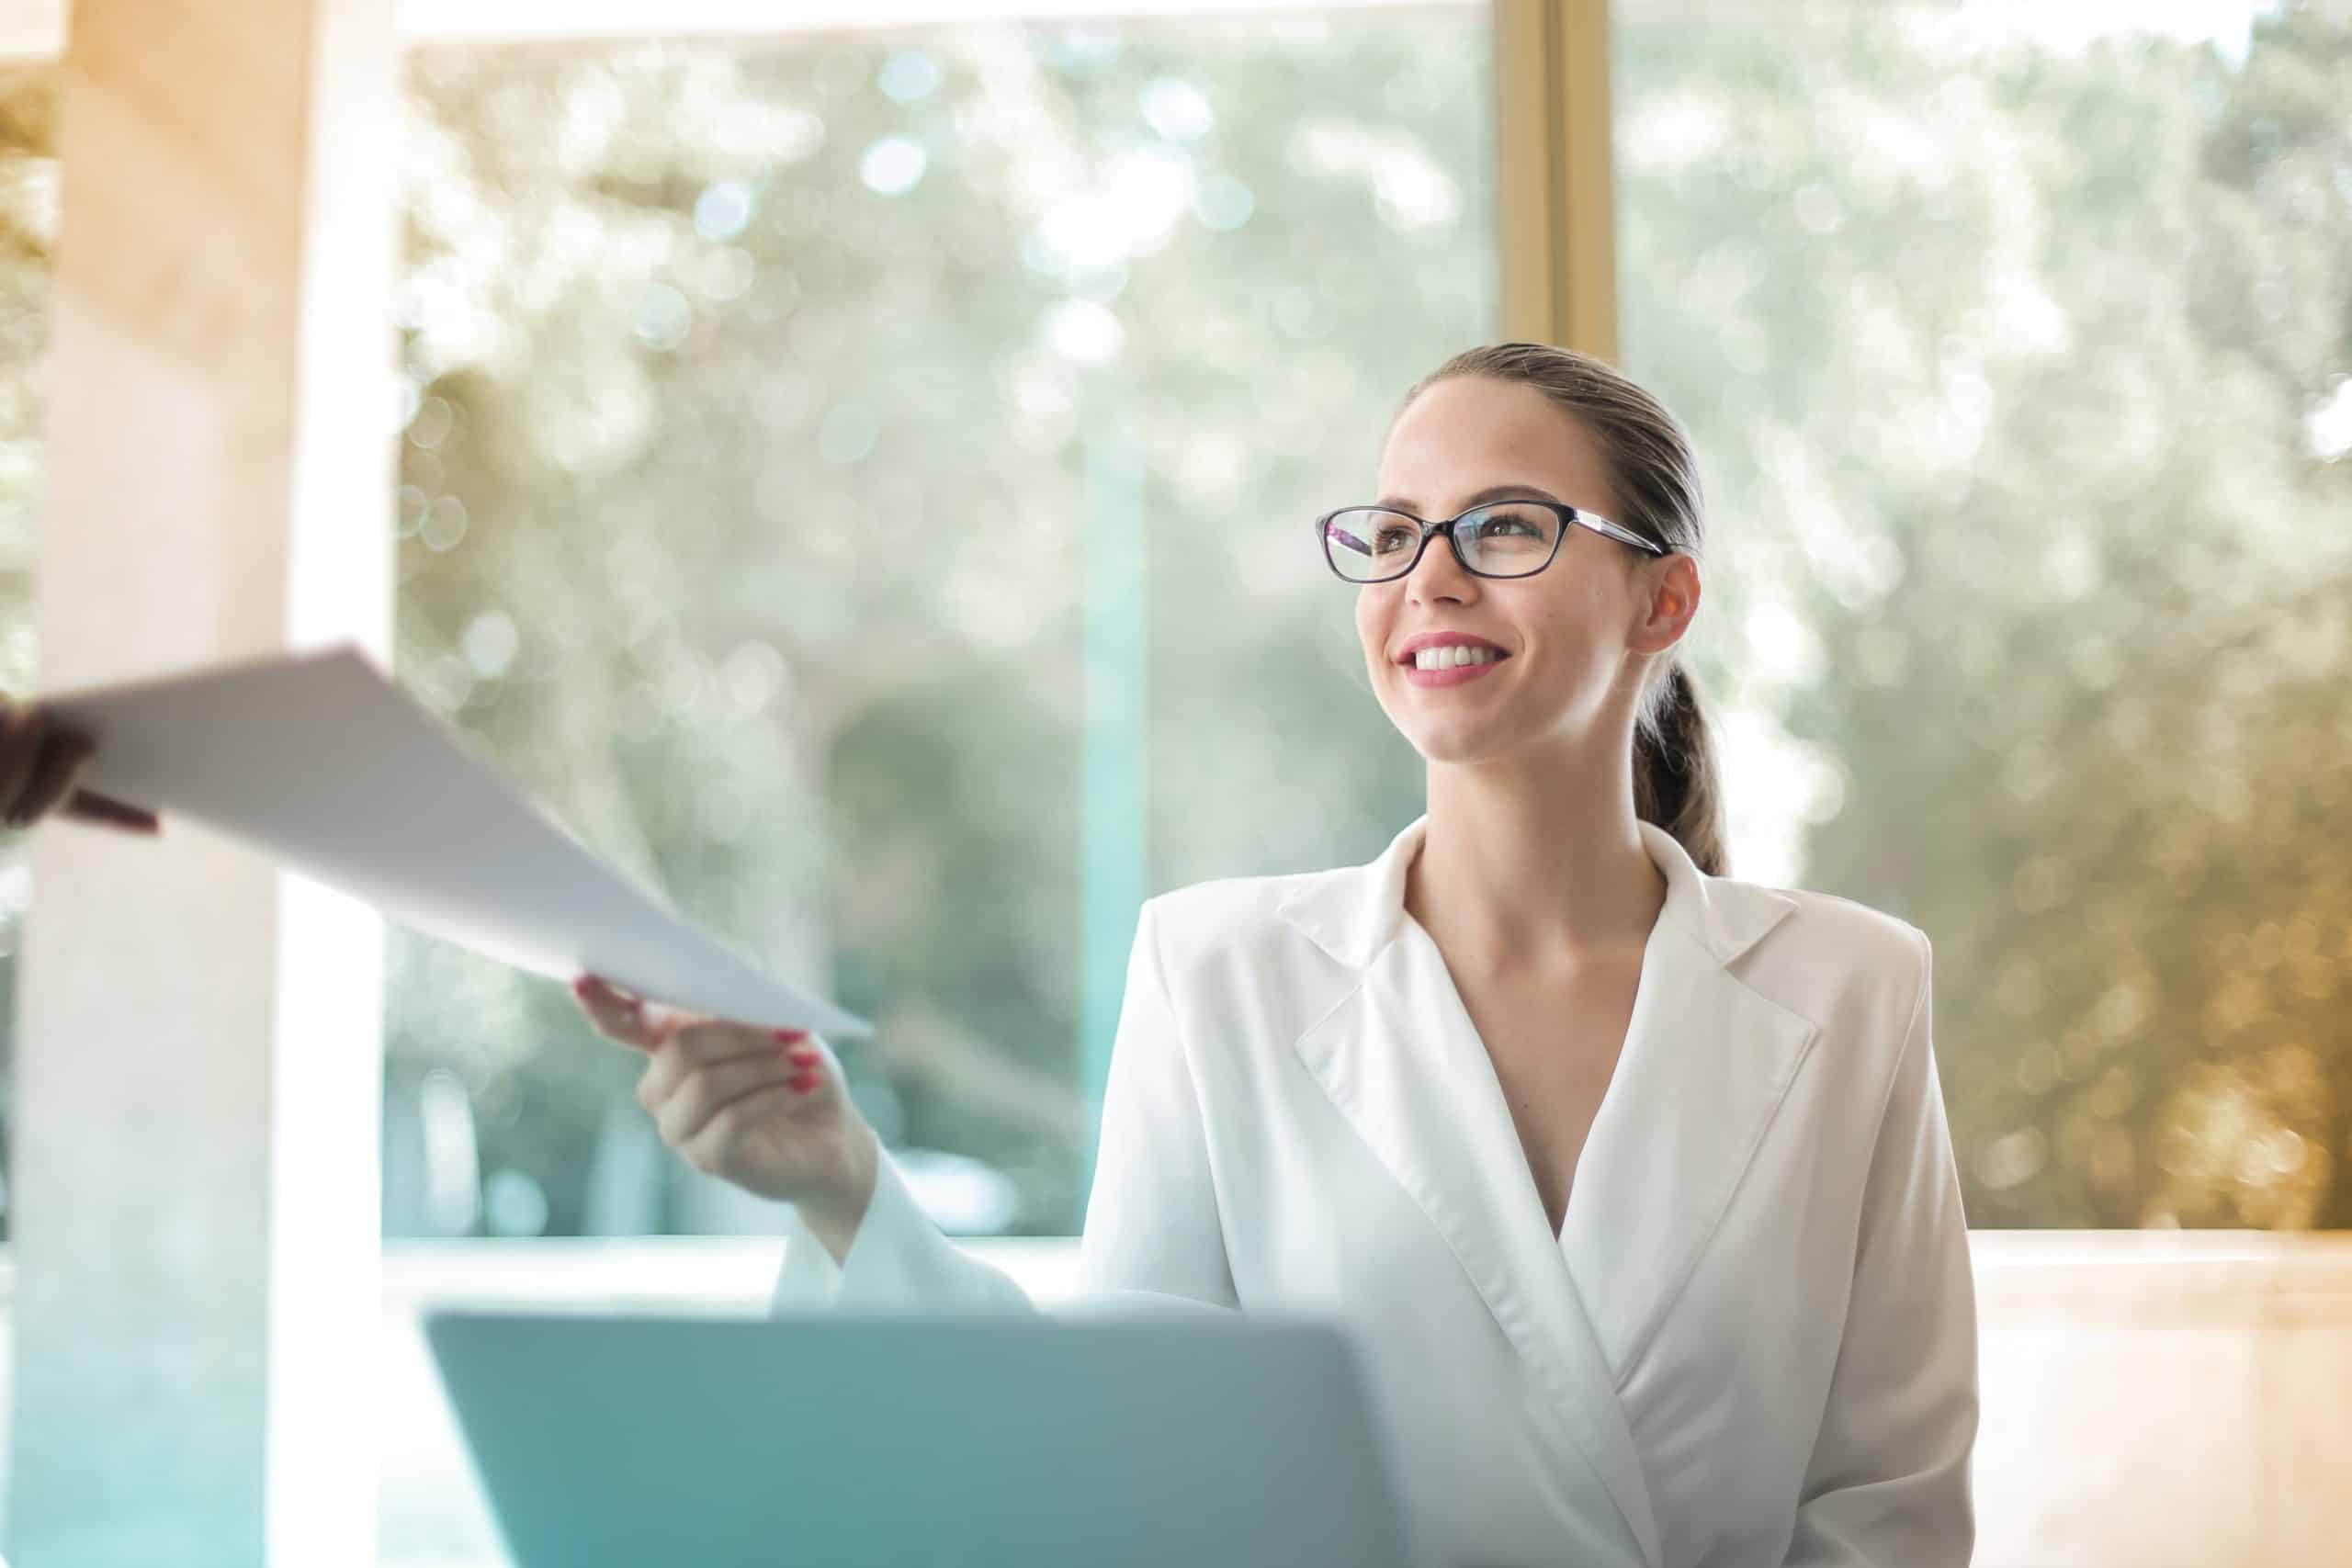 How To Increase Your Confidence: Know What The Experts Say